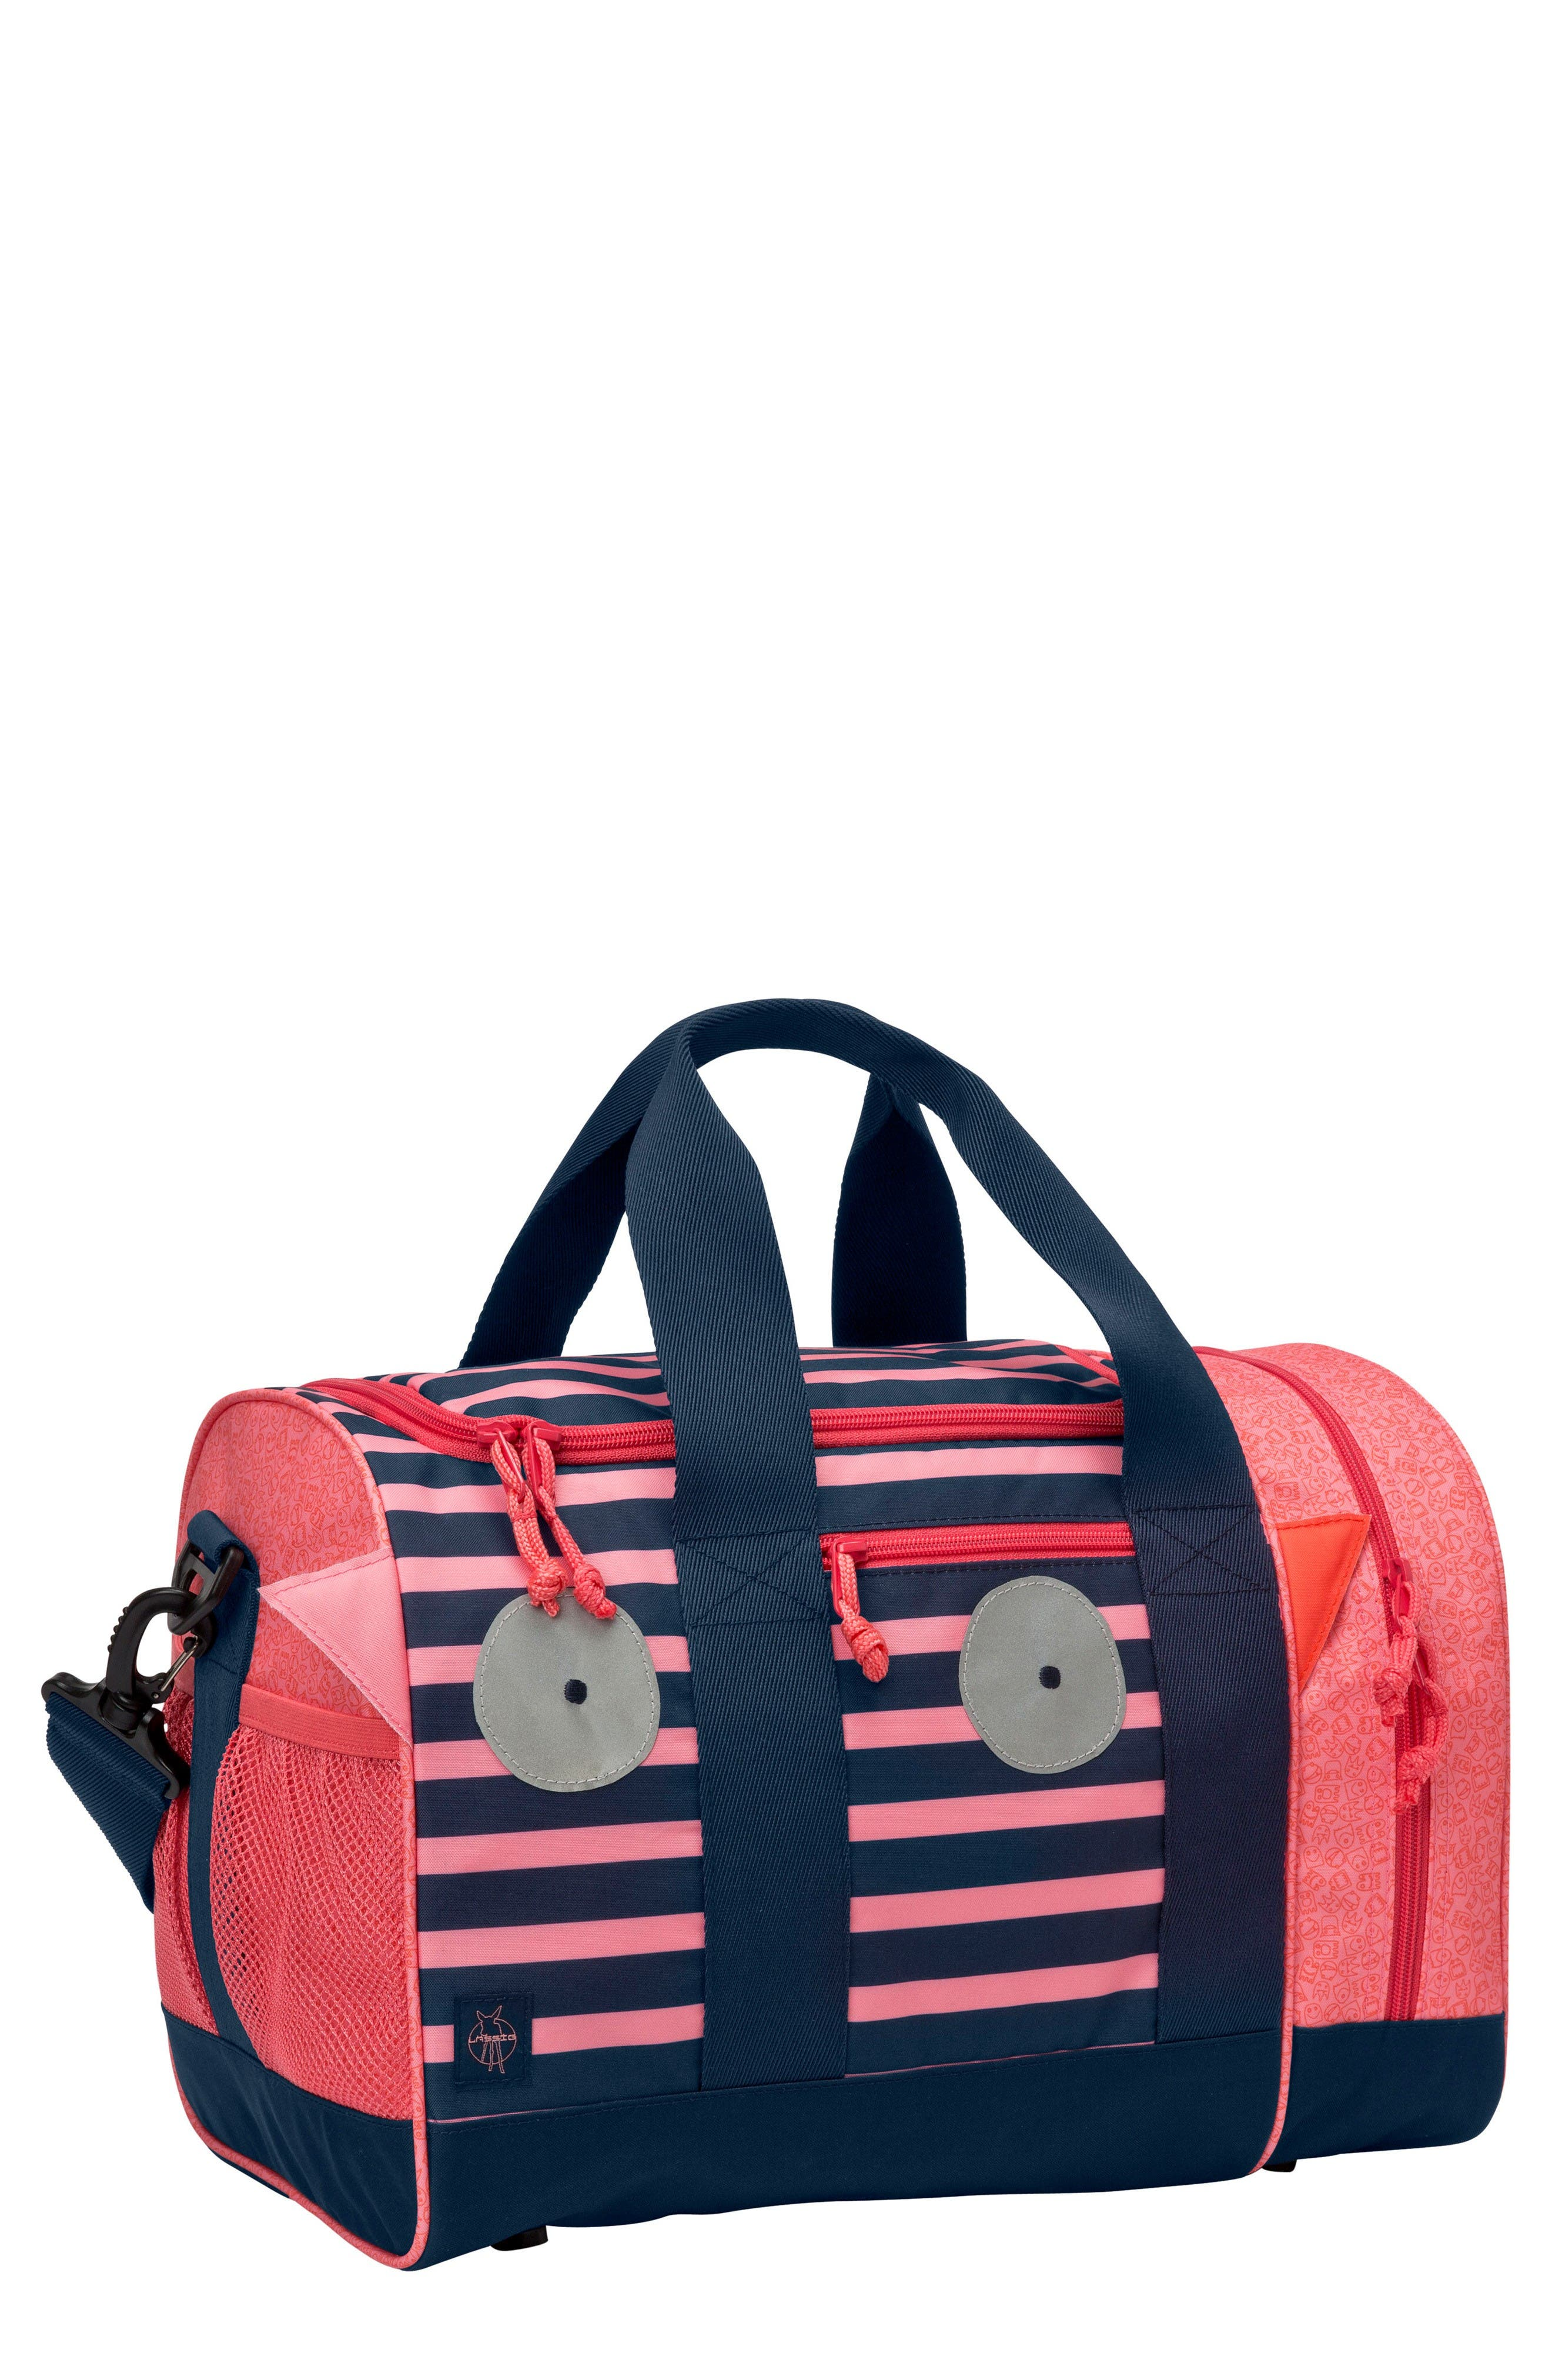 Mini Sports Bag with Glow-in-the-Dark Eyes,                         Main,                         color, Mad Mabel